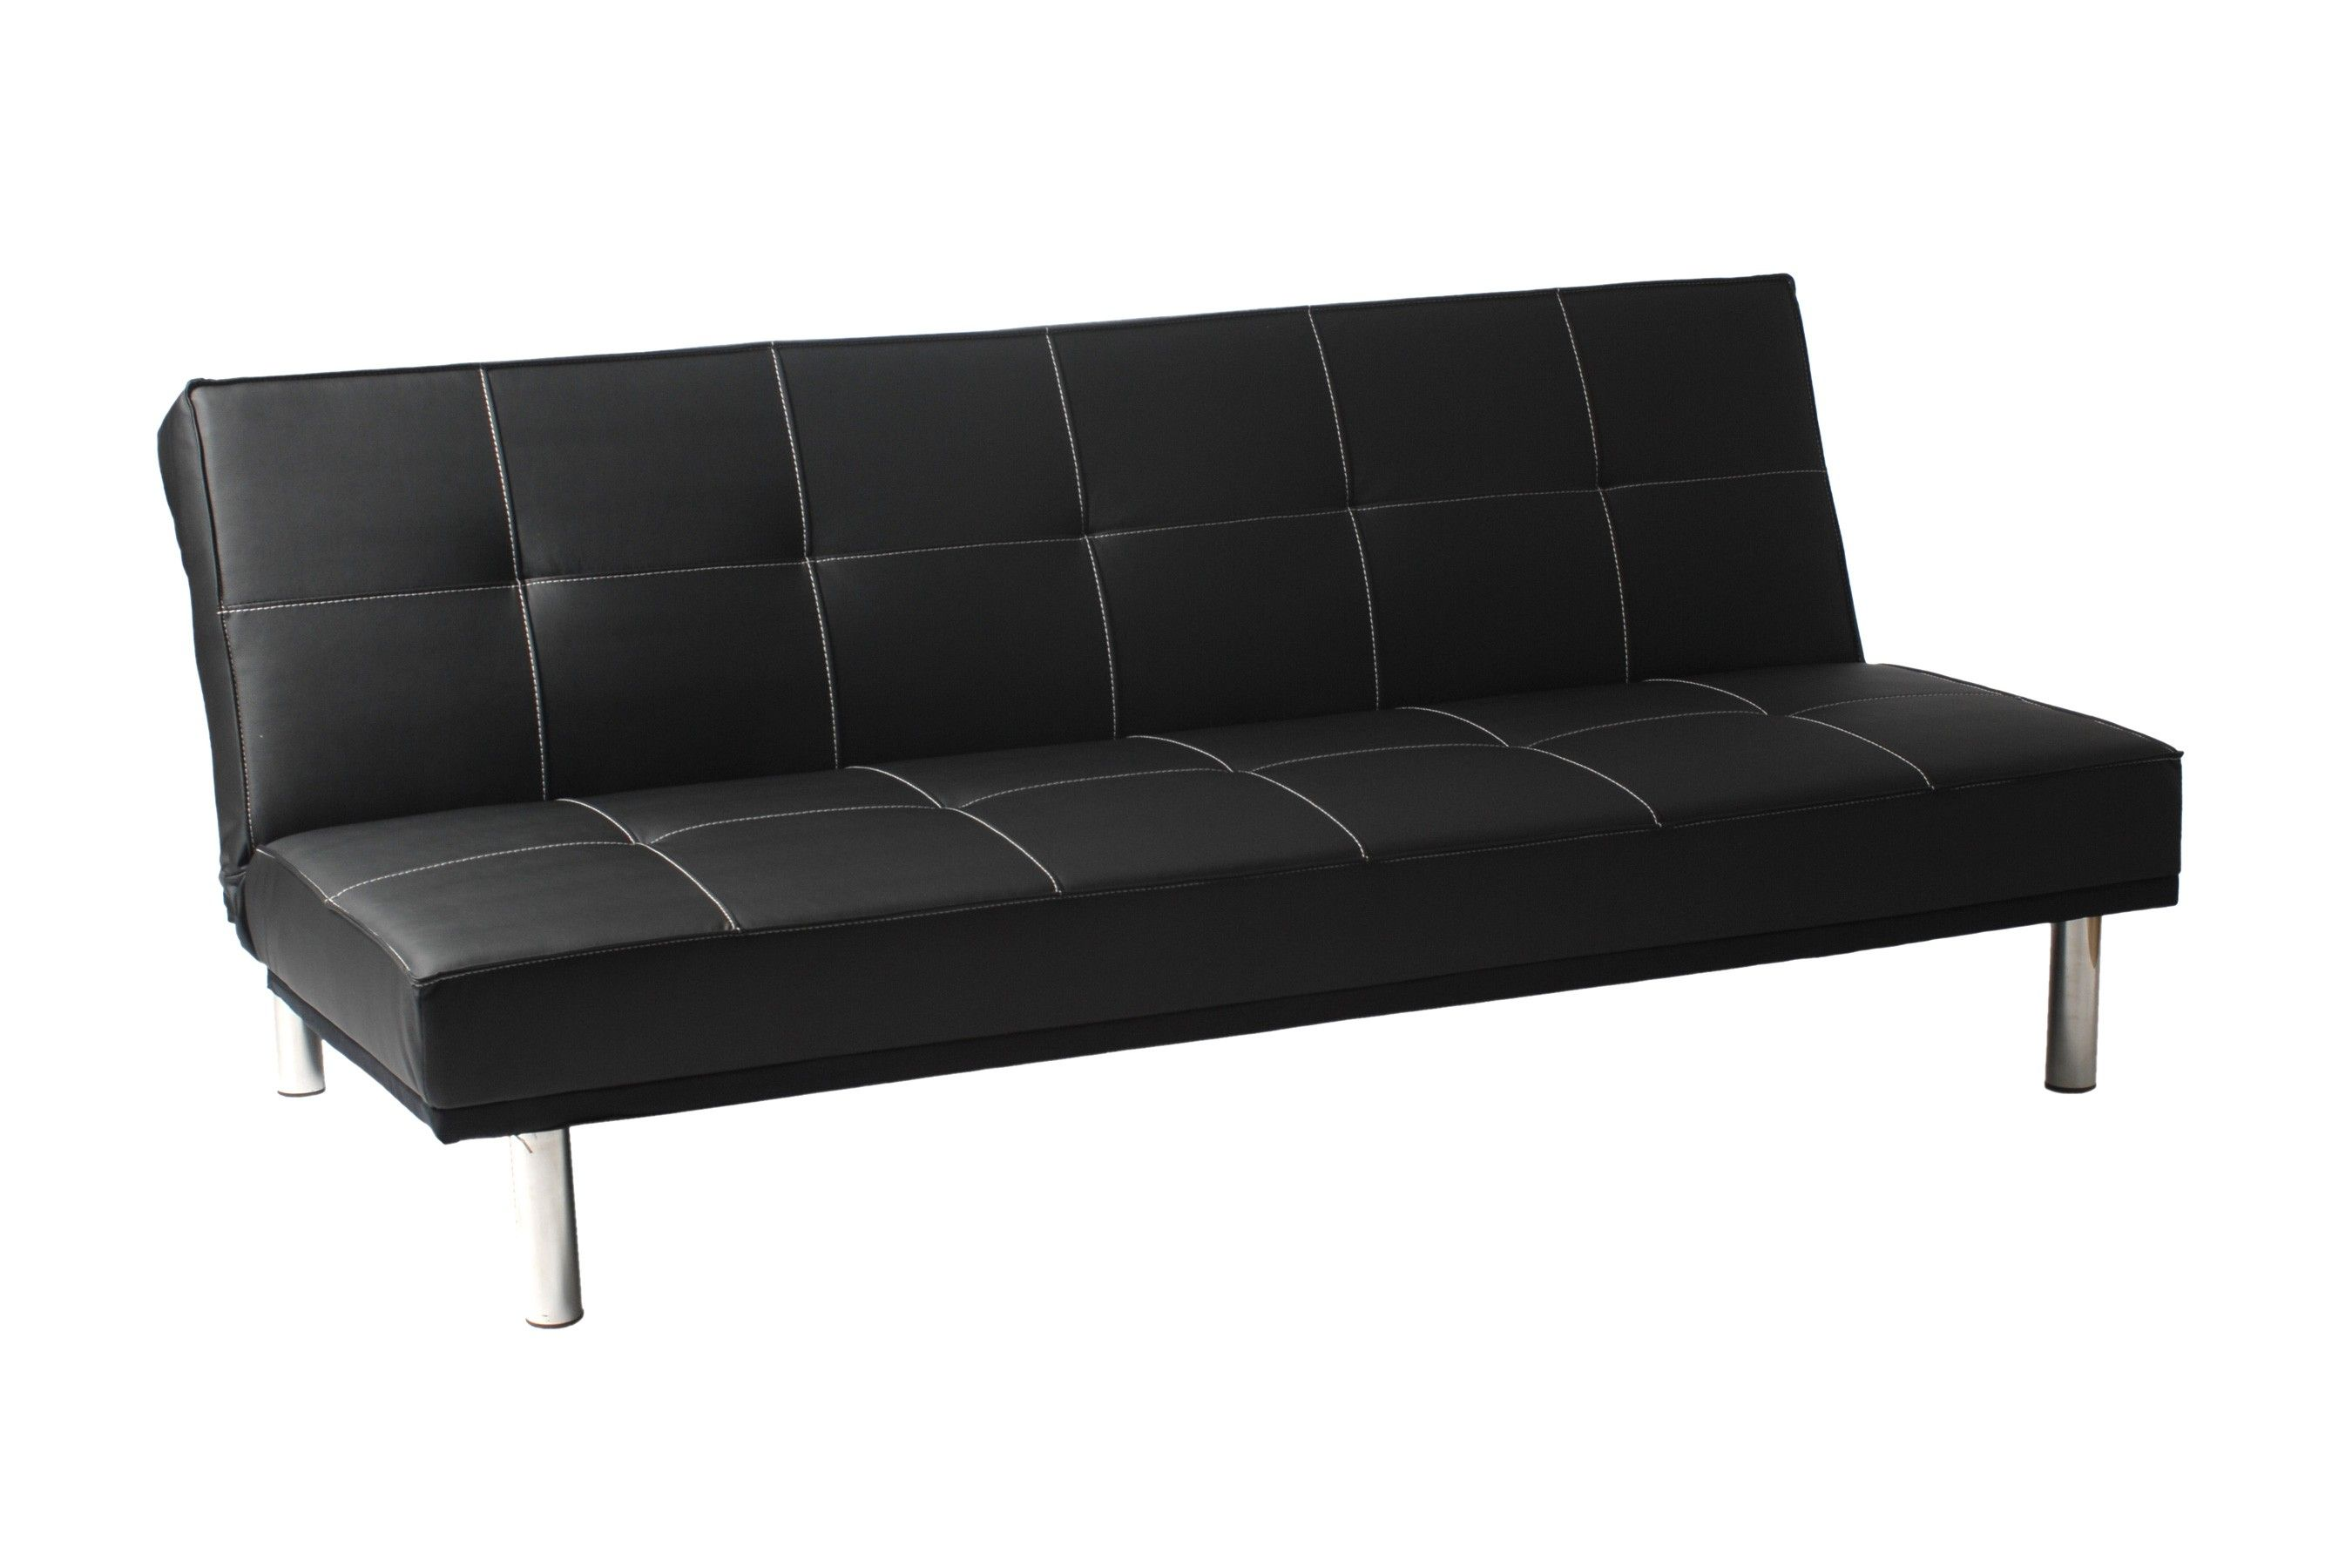 Sven Sofa Bed Black Leatherette Stainless Steel By Euro Style Modern Sofa Bed Futon Cushions Sofa Bed Black